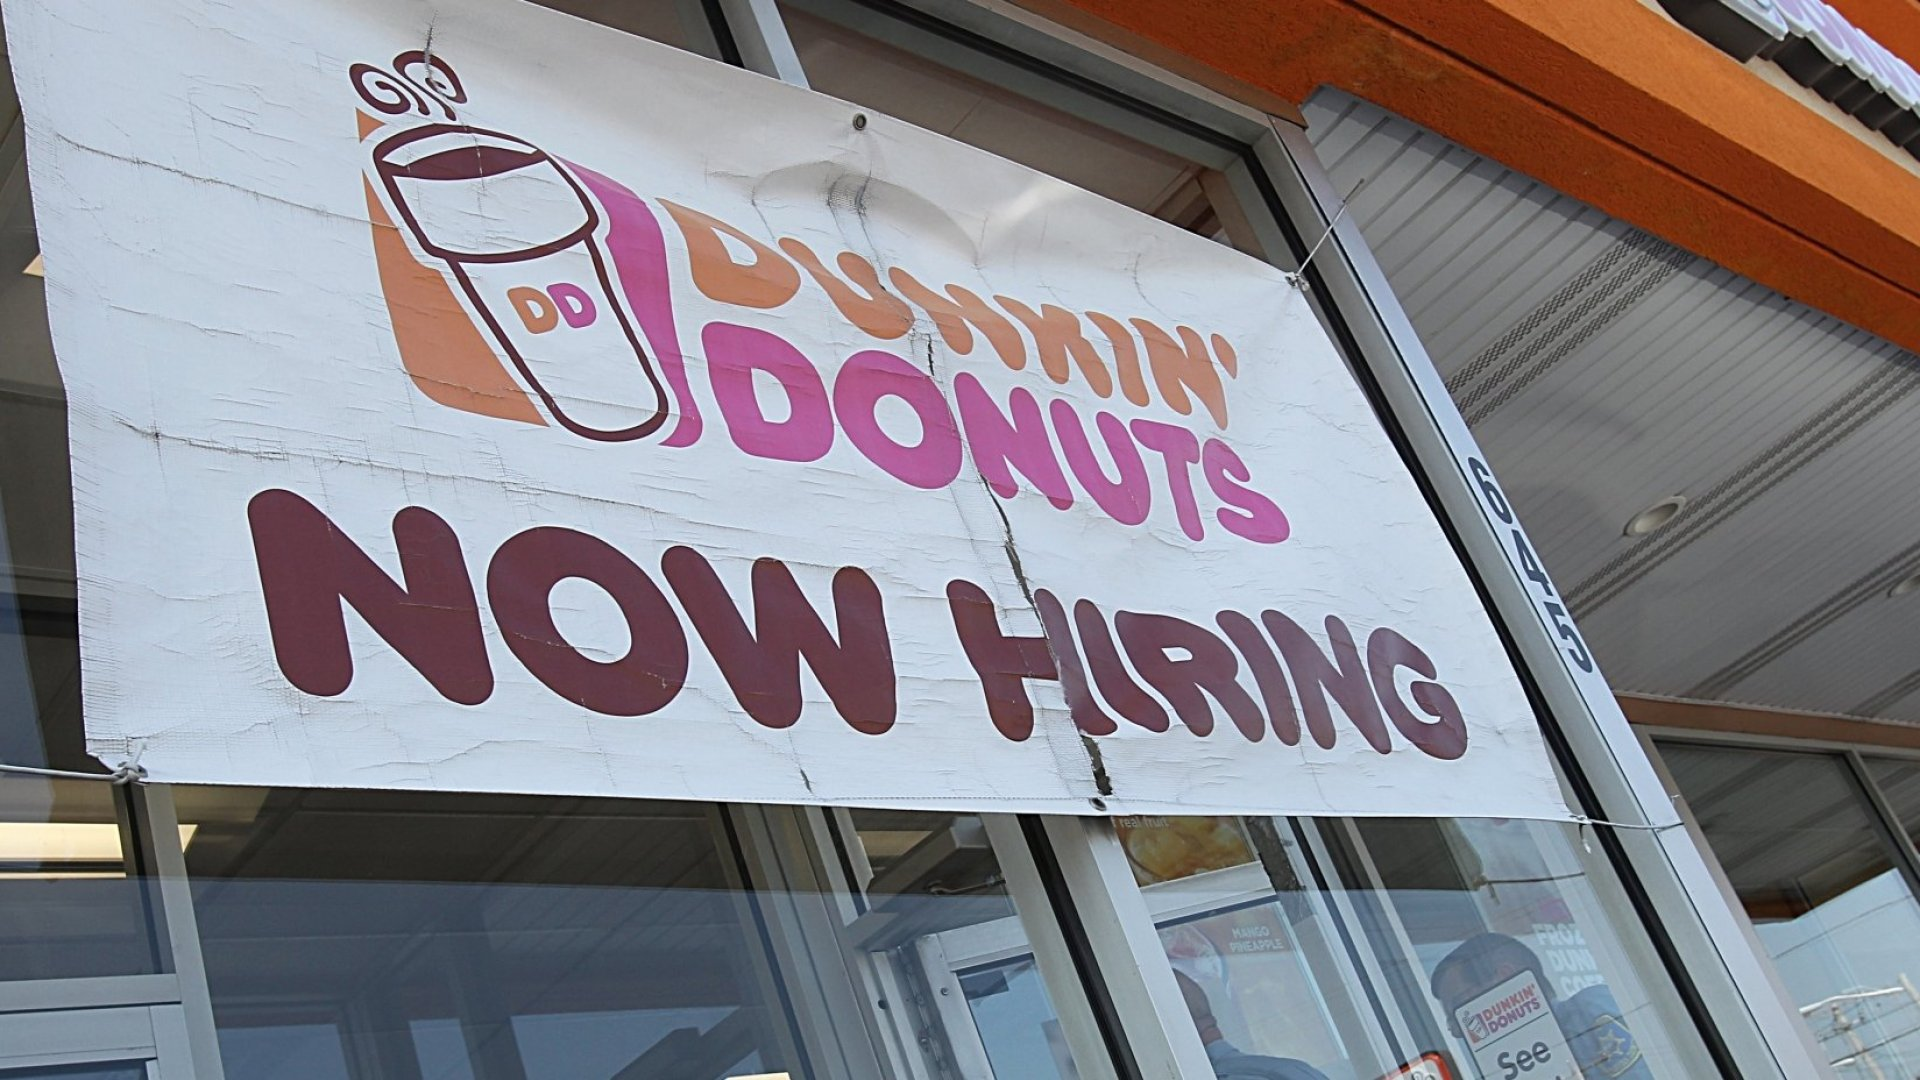 They may be hiring. But what will they be selling?